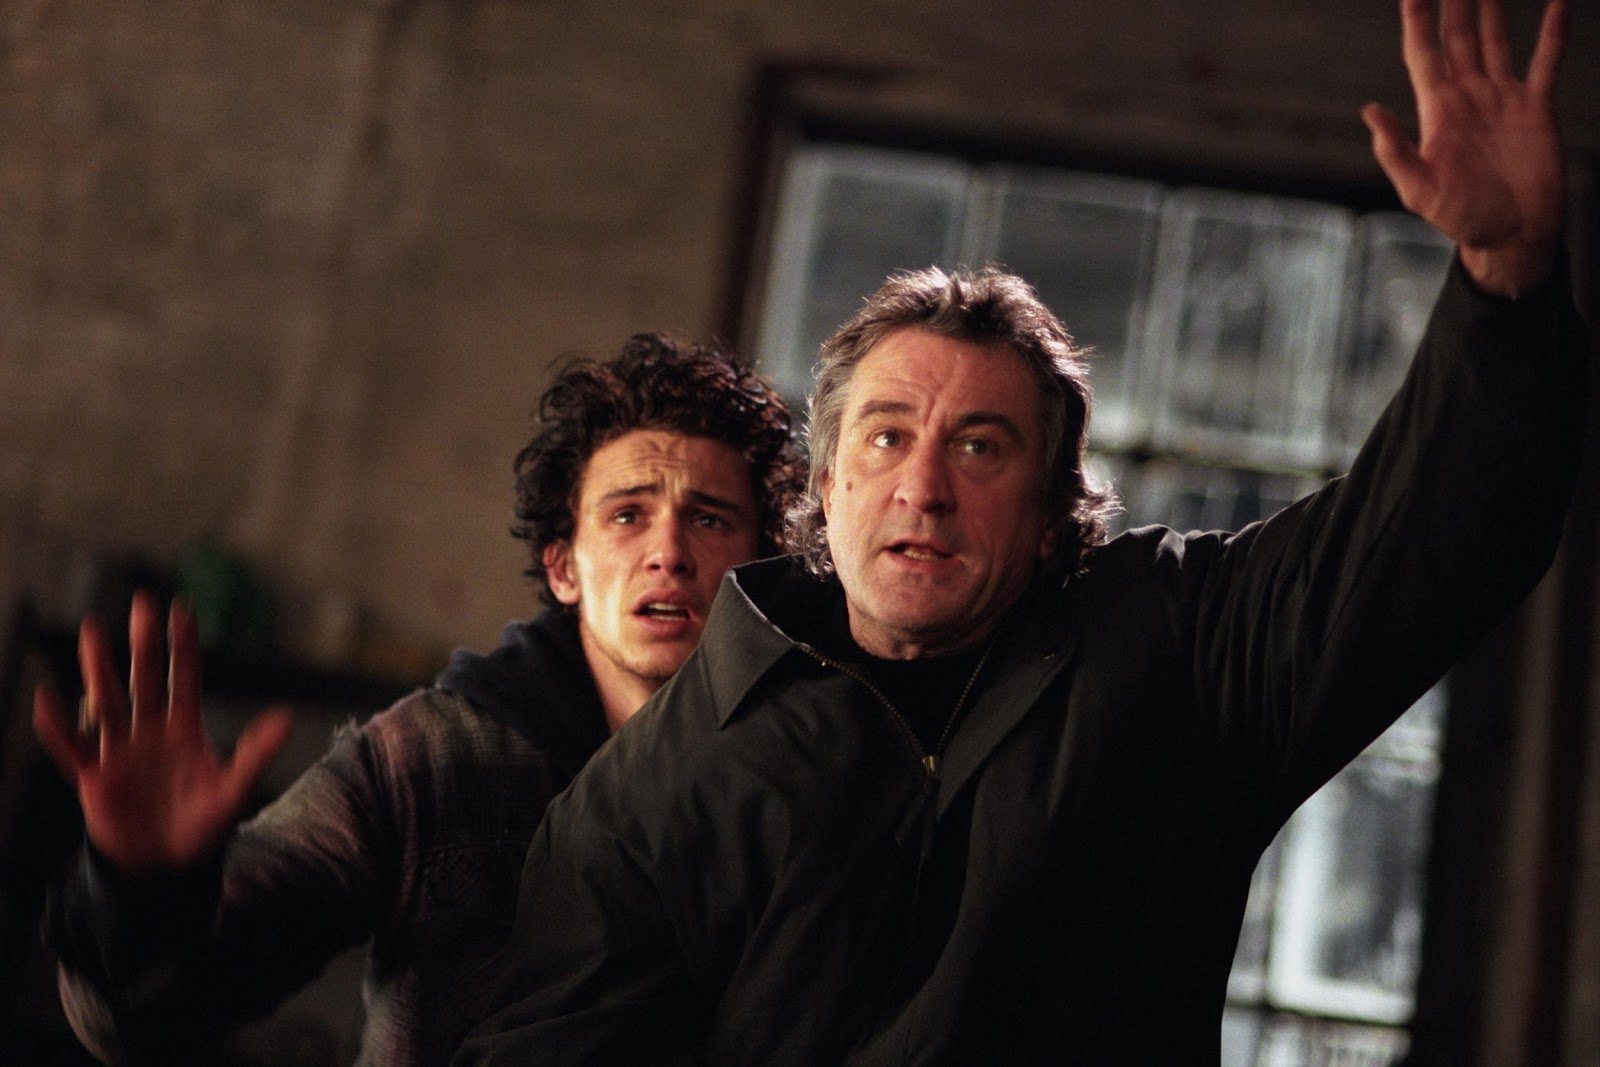 http://4.bp.blogspot.com/-J2e6esOie8M/T-N0HNkMNfI/AAAAAAAAA7Y/ssvyU6ltRAY/s1600/james_franco_robert_de_niro_city_by_the_sea_001.jpg